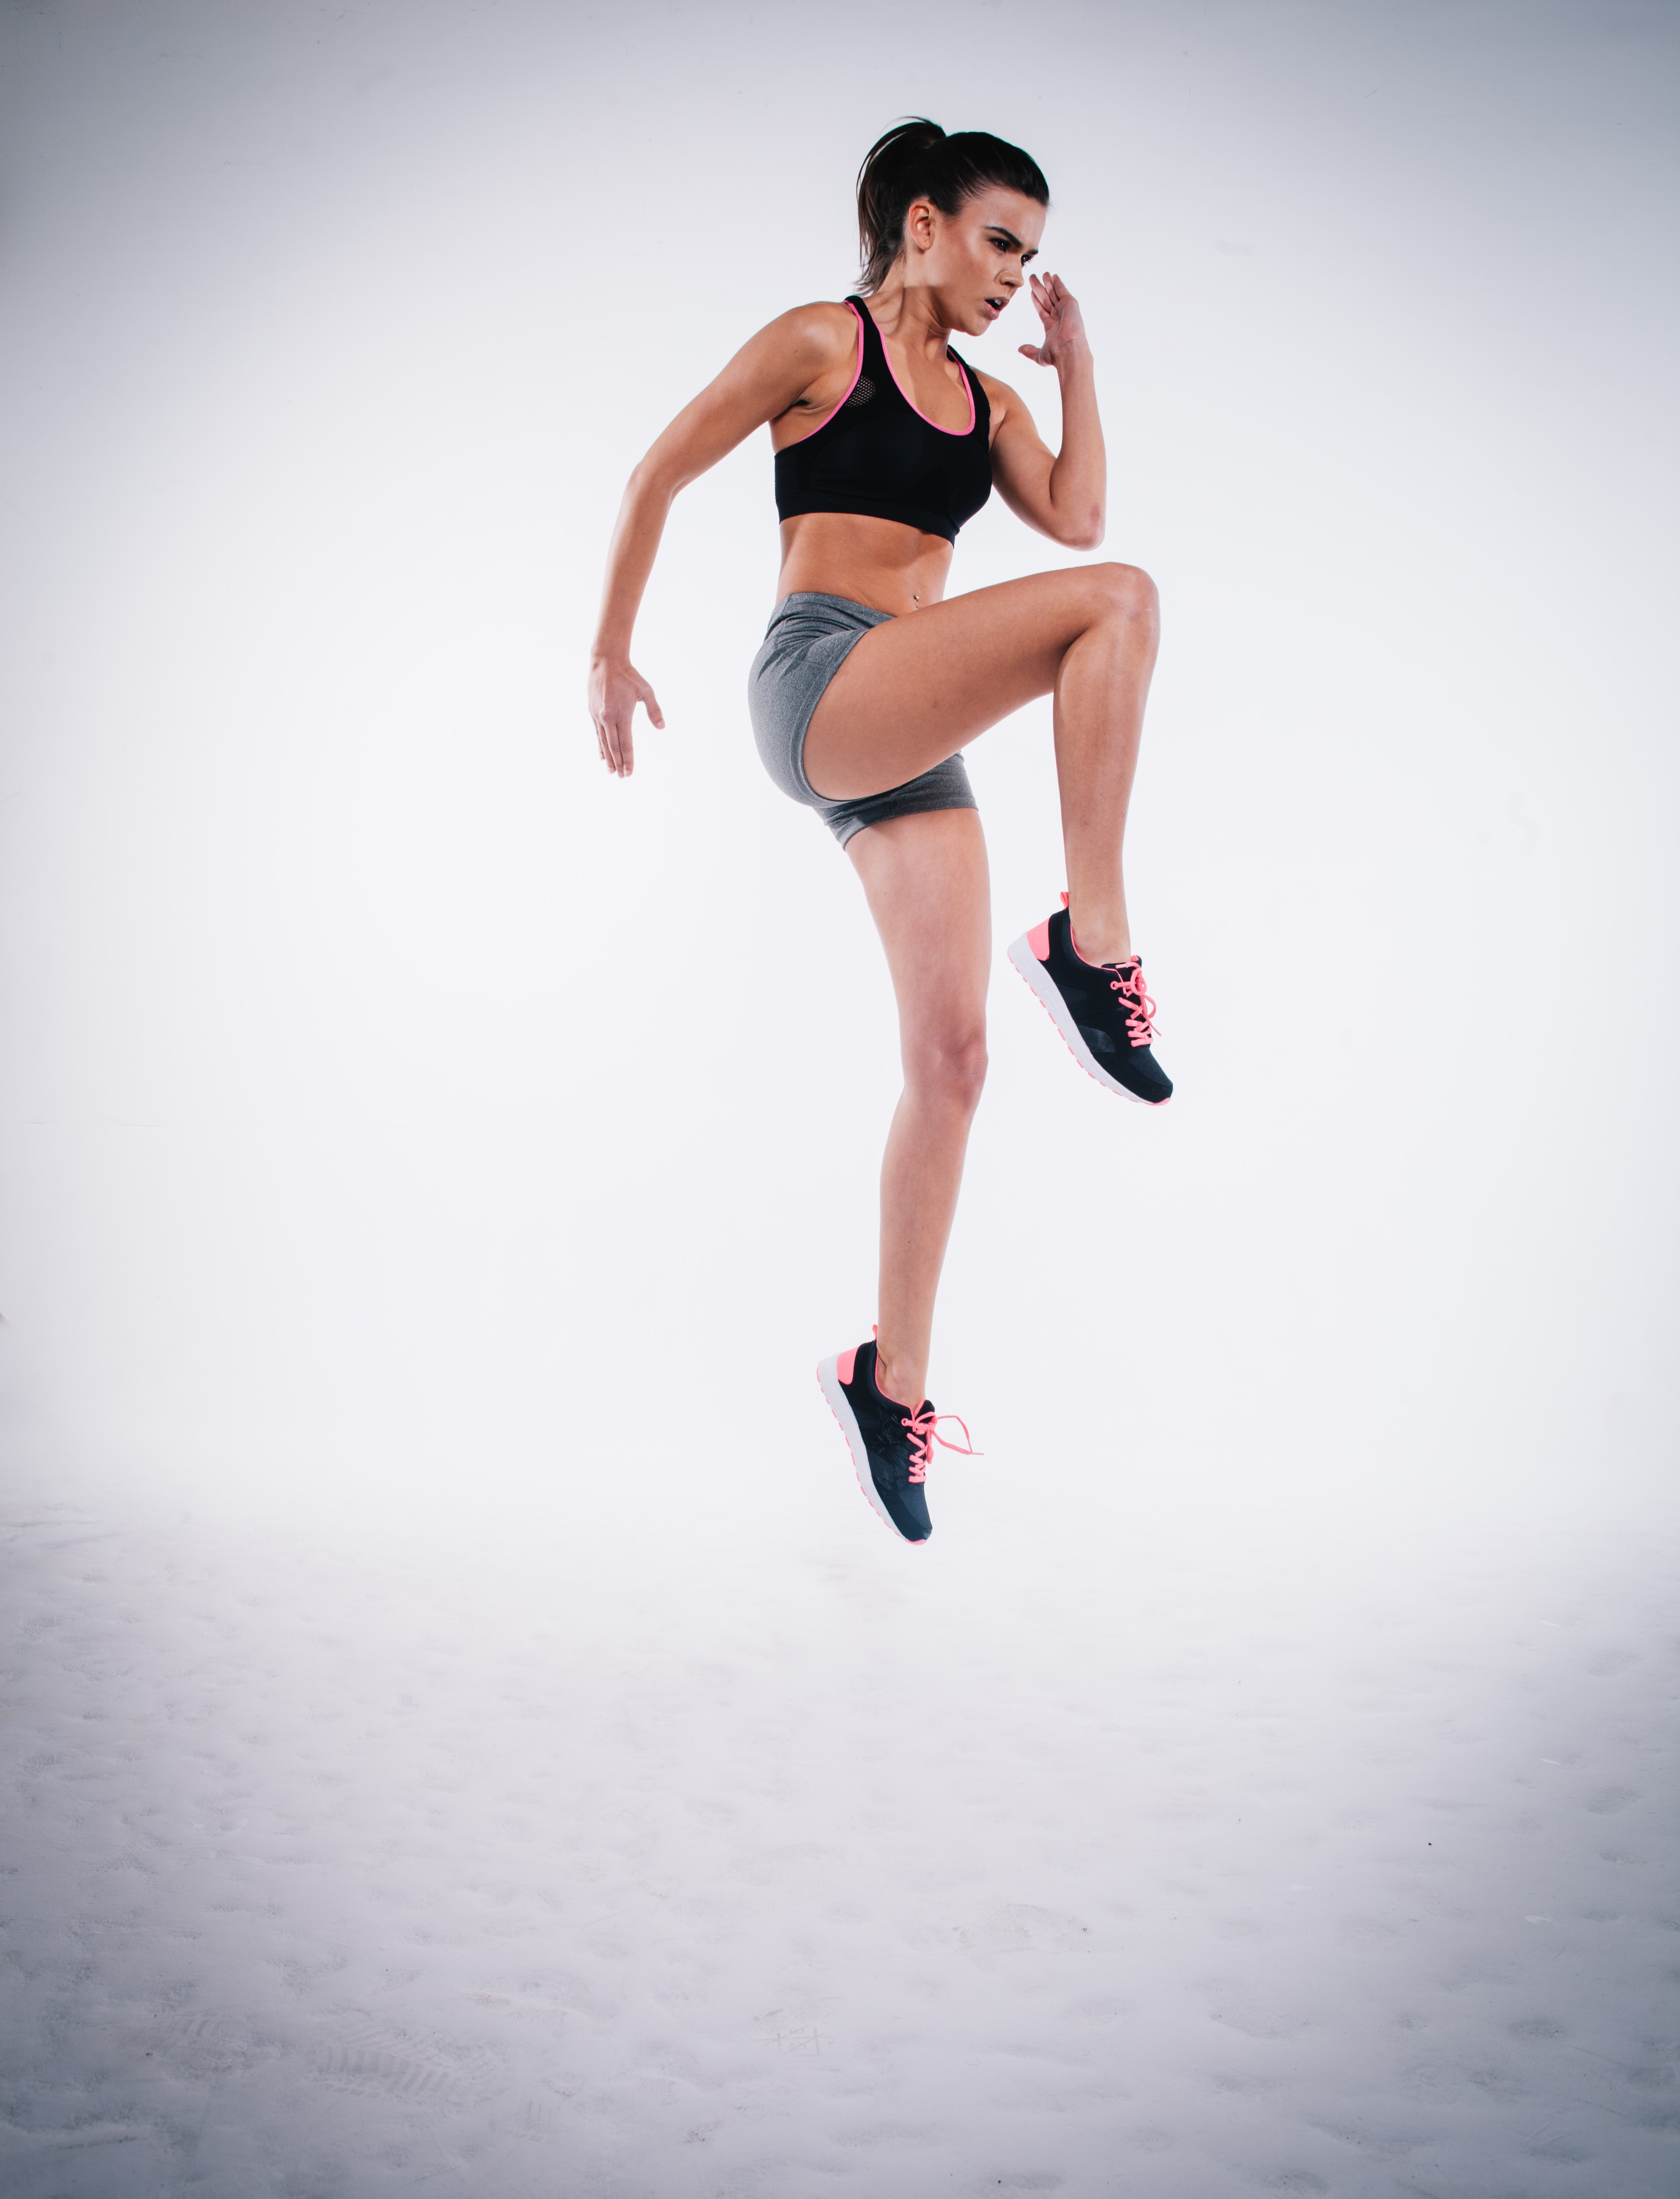 A determined woman in a sports bra, jump-lunging into the sky in London